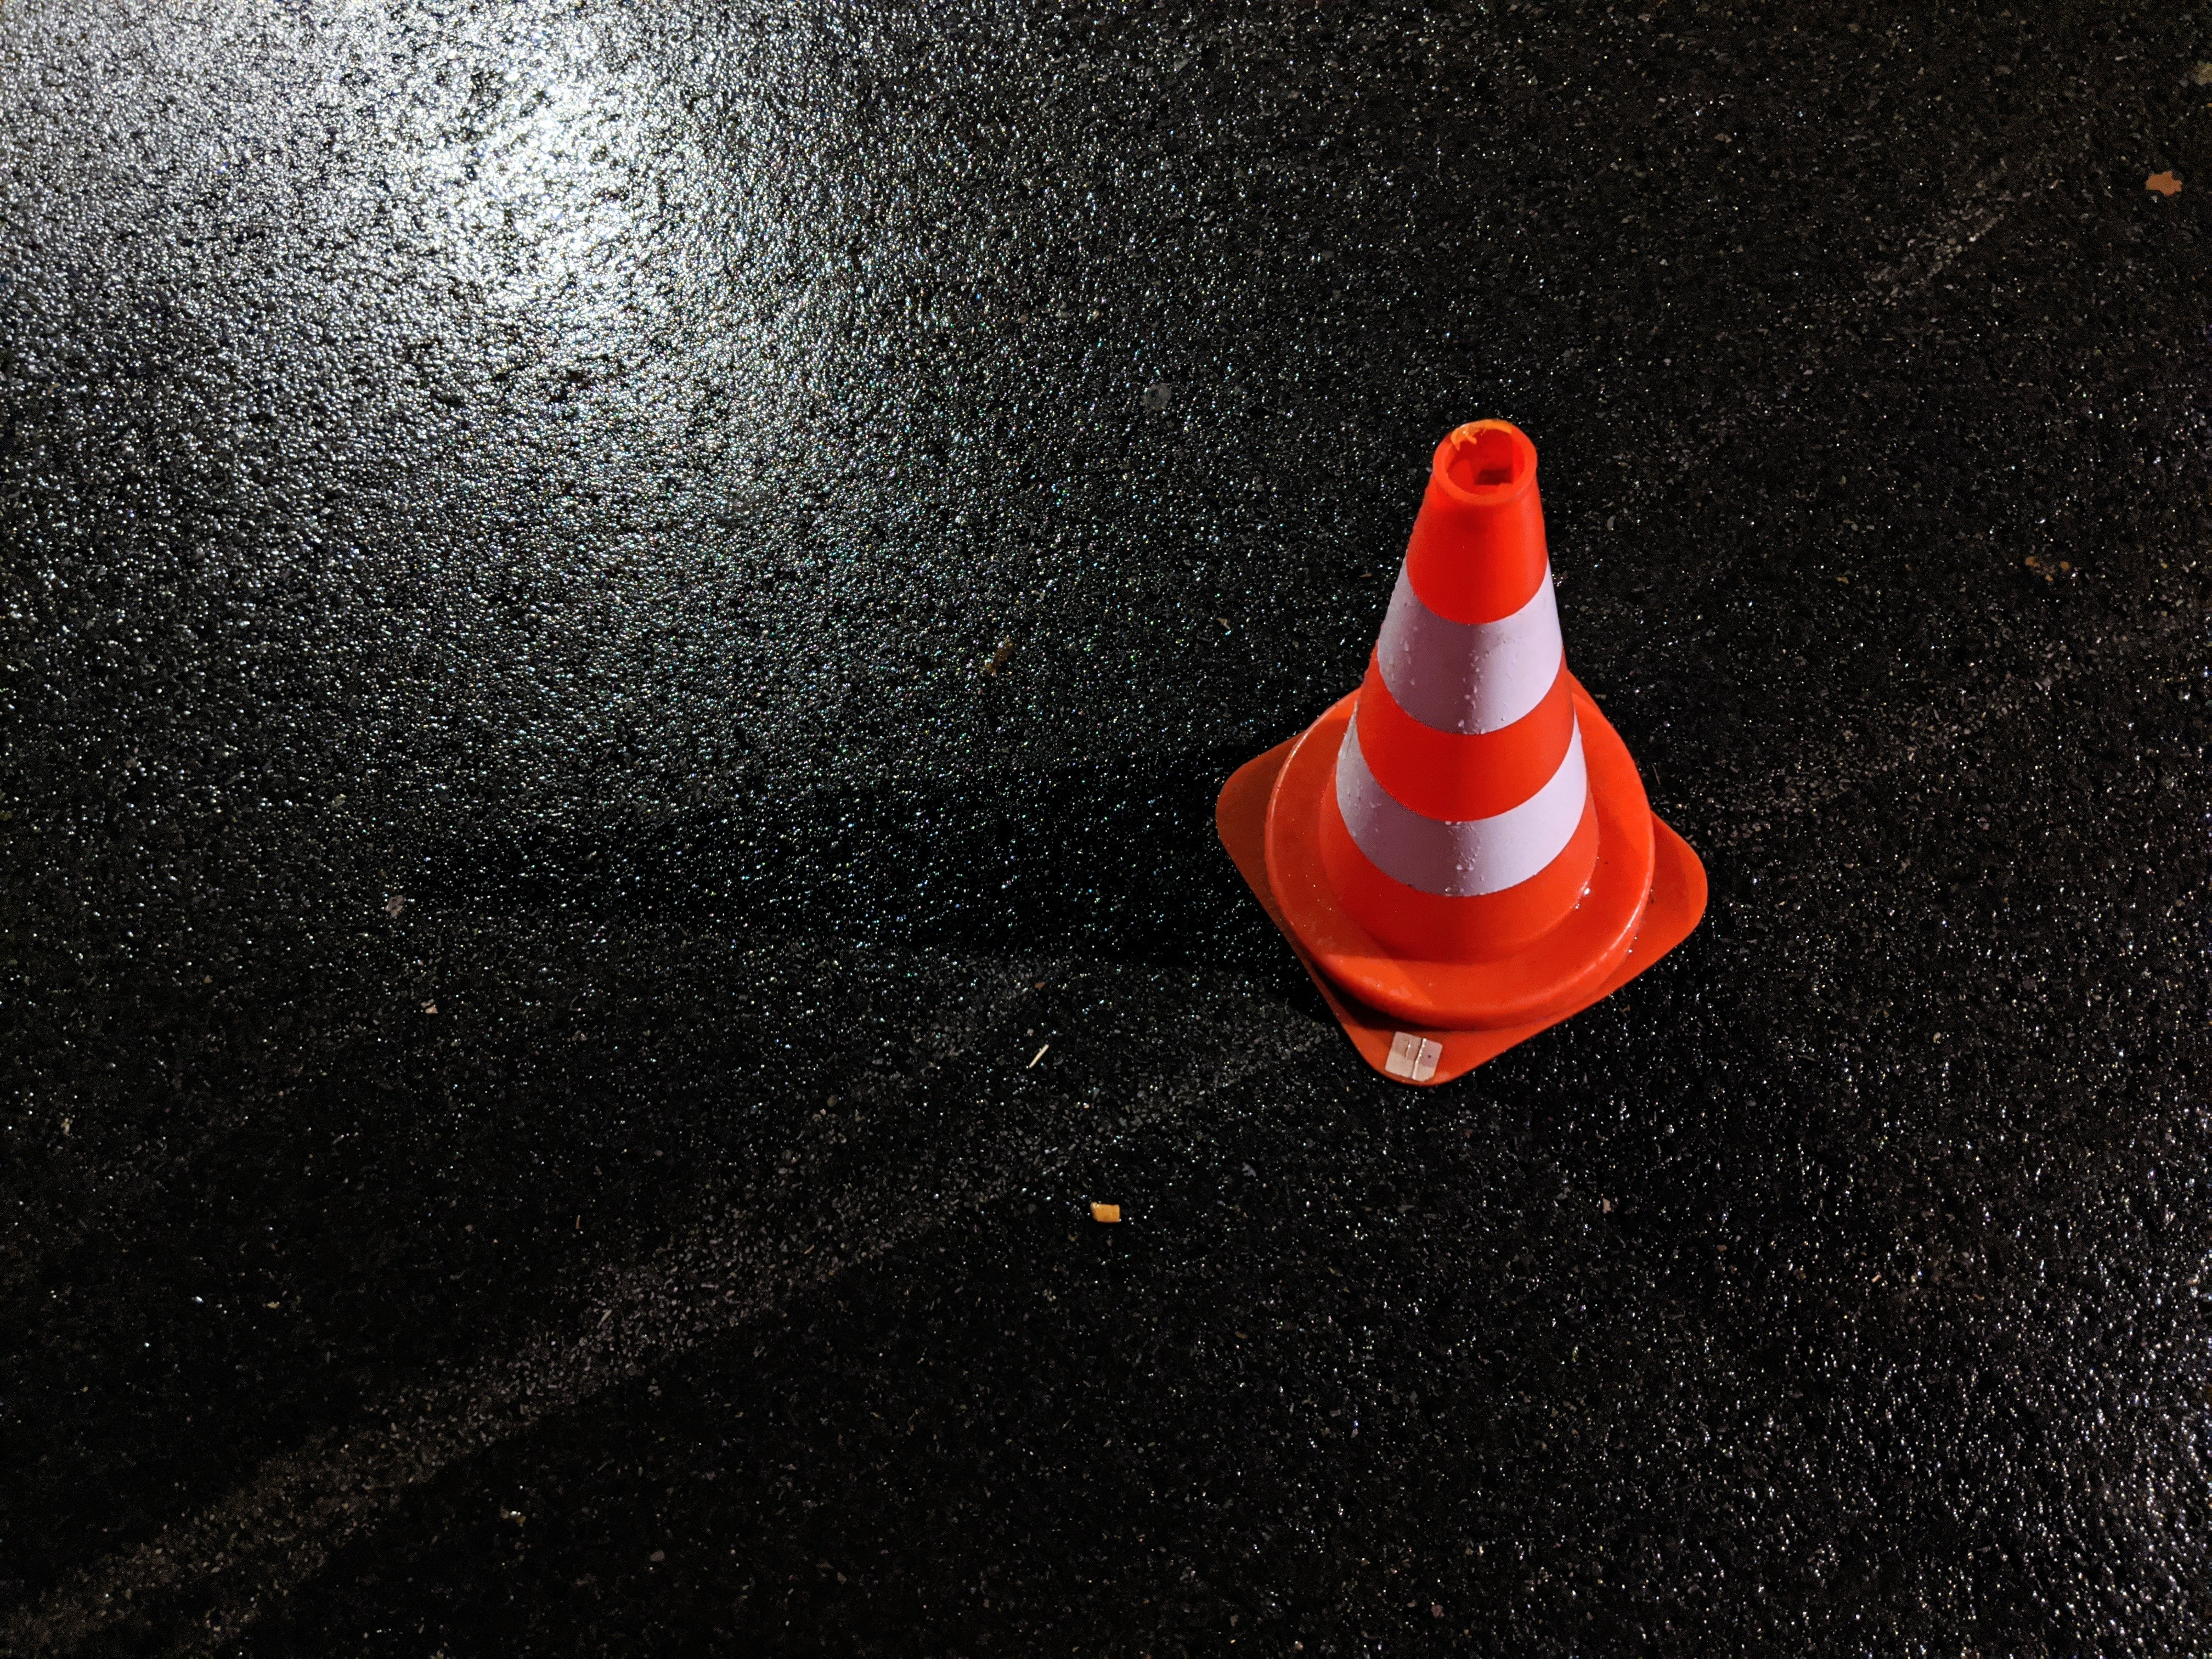 Traffic cone on dark, wet pavement; image by Lucian Alexe, via Unsplash.com.